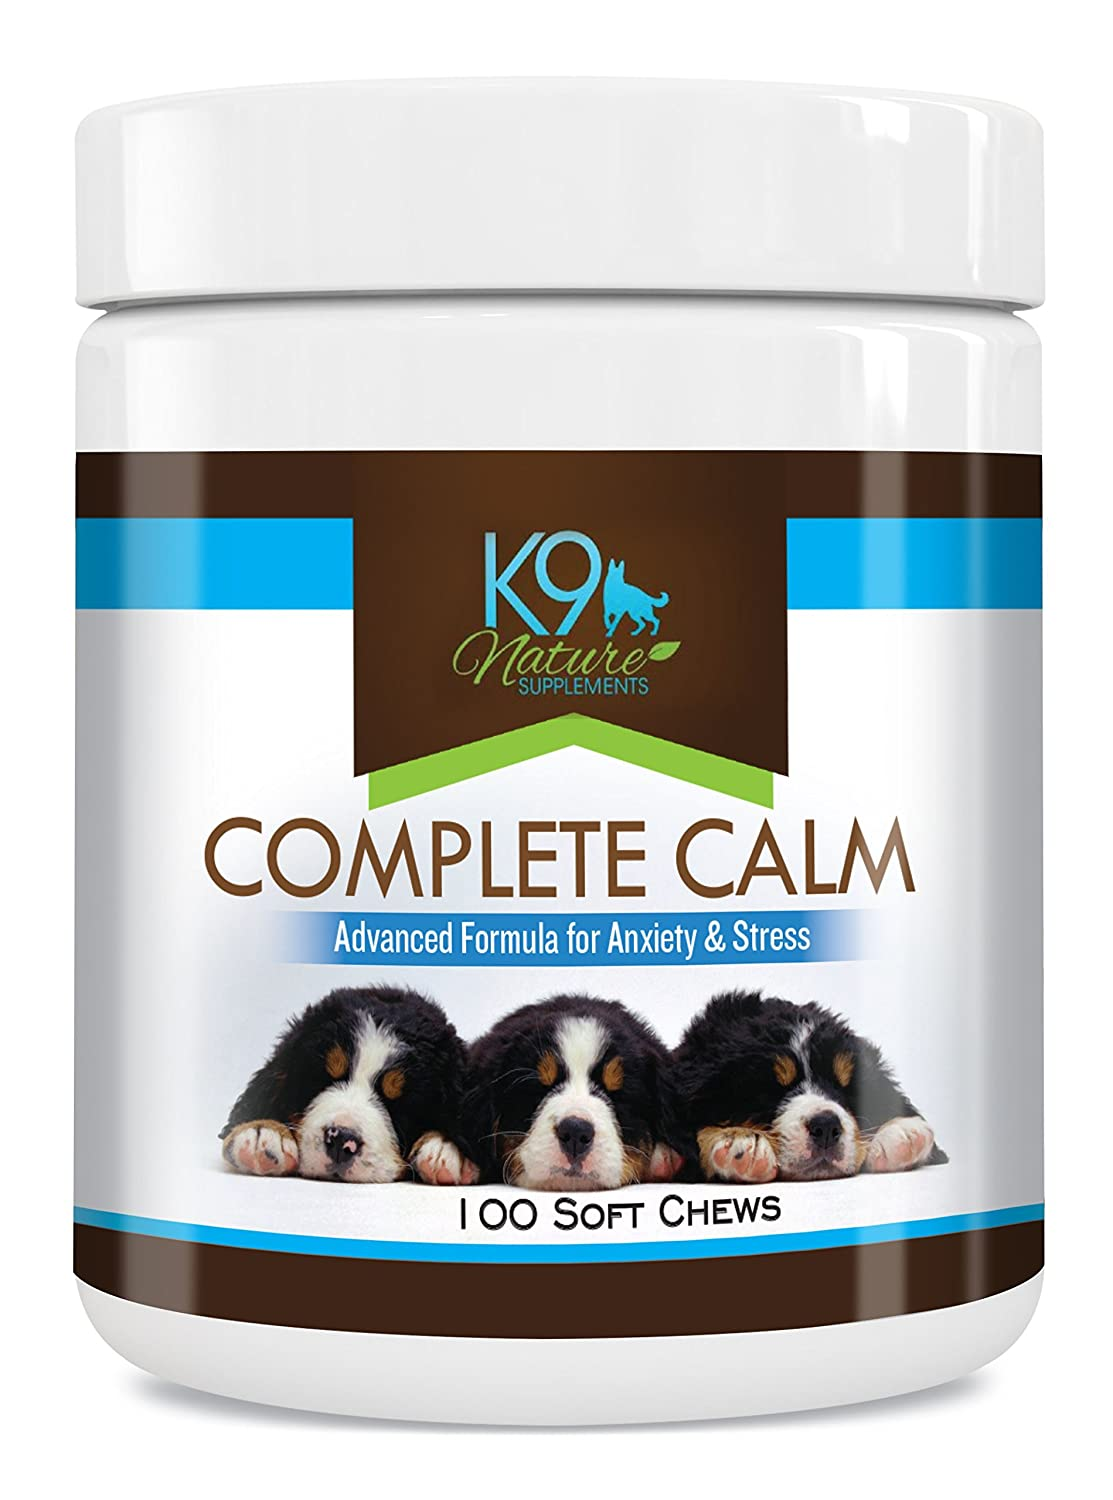 Dog Anxiety Relief Complete Calming Treats for Dogs for Reducing Stress 100 Natural Pet Calm Supplement Soft Chews